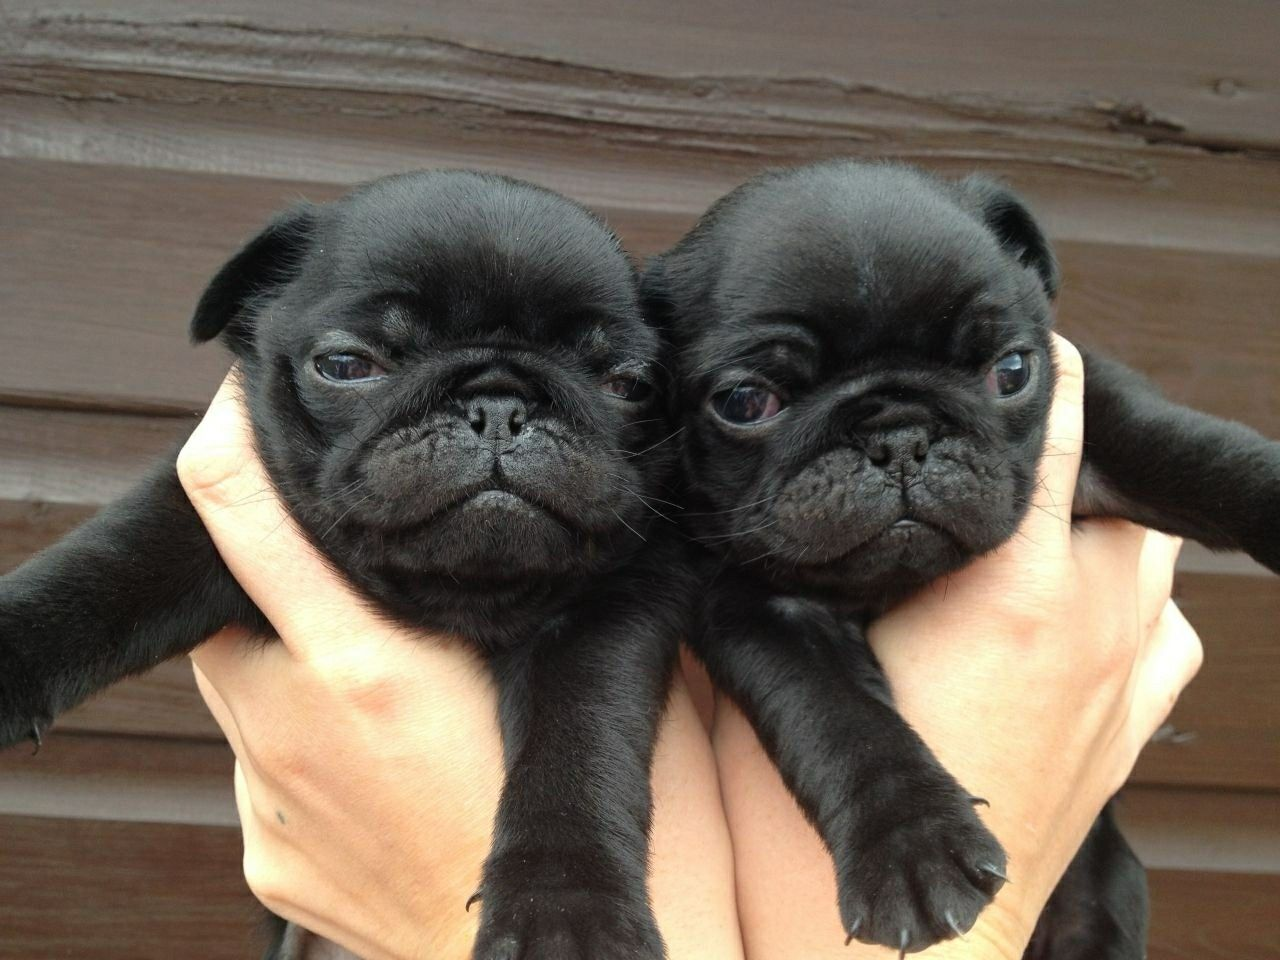 Pin By Marie On Pugs Pug Puppies Black Pug Puppies Baby Pugs